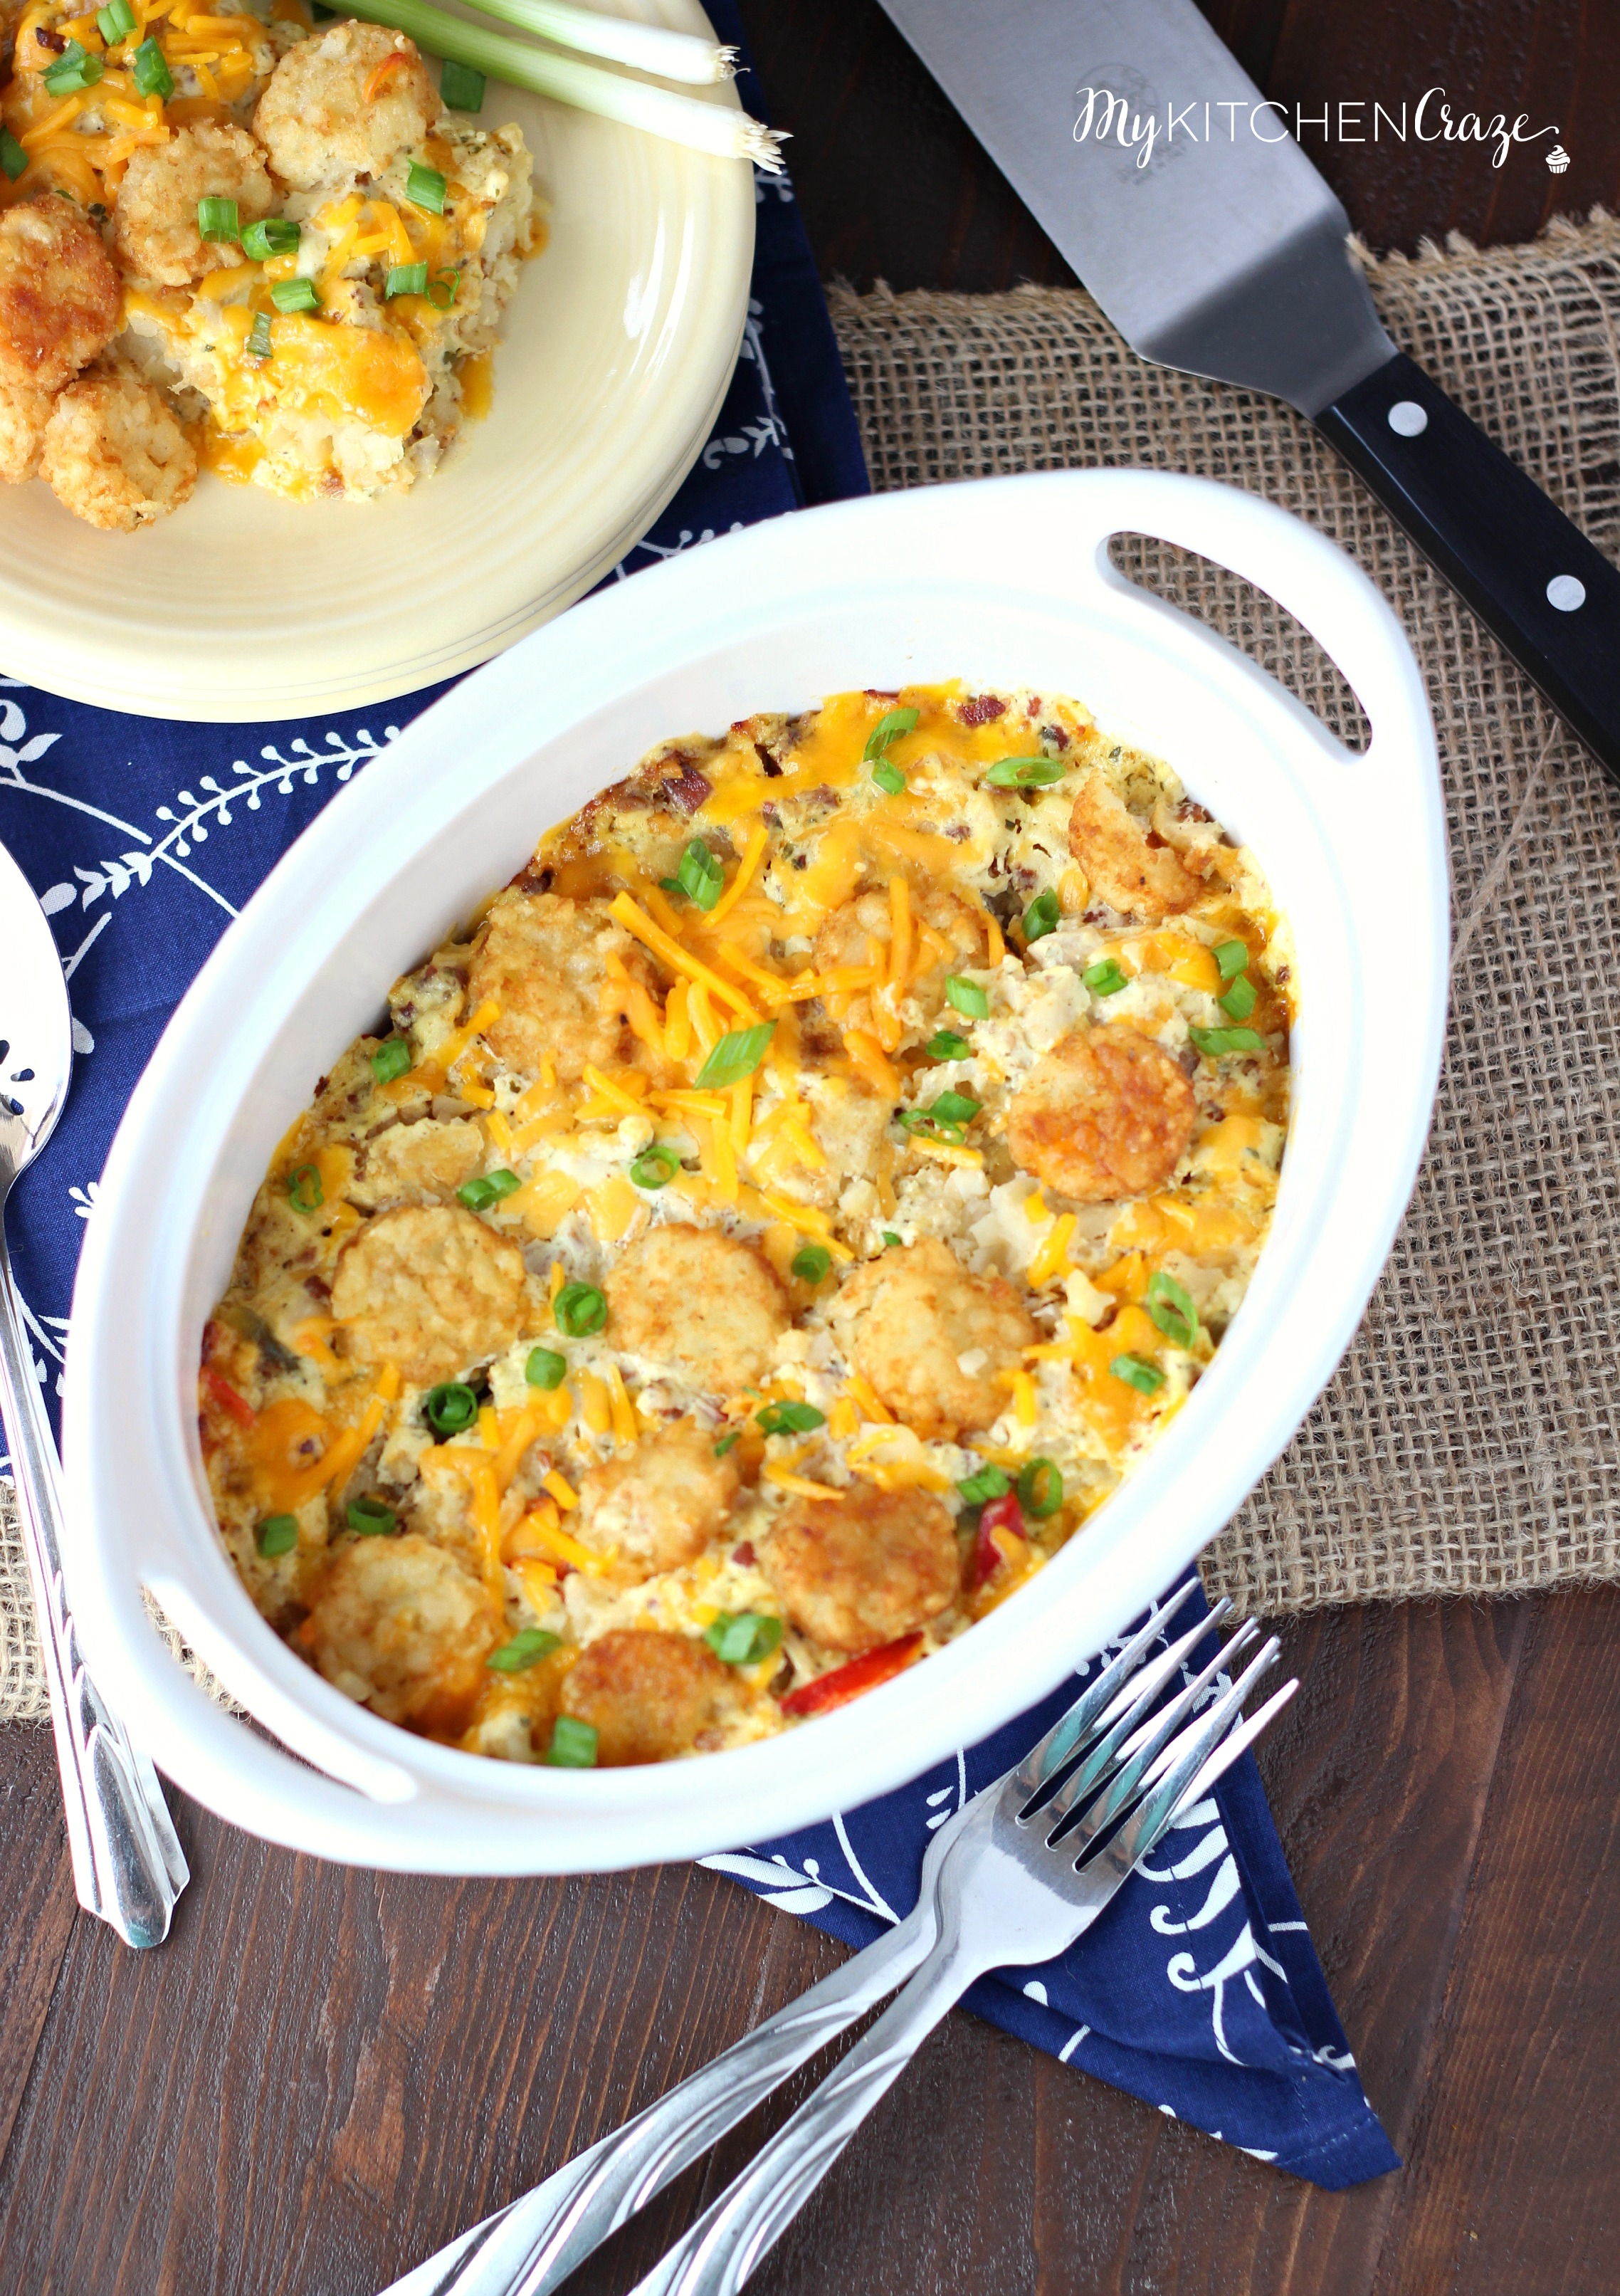 IMG_2939Chicken Ranch Tater Tot Casserole ~ mykitchencraze.com ~ Enjoy this easy no fuss casserole on those busy hectic nights. Creamy and loaded with tater tots. What could be better?